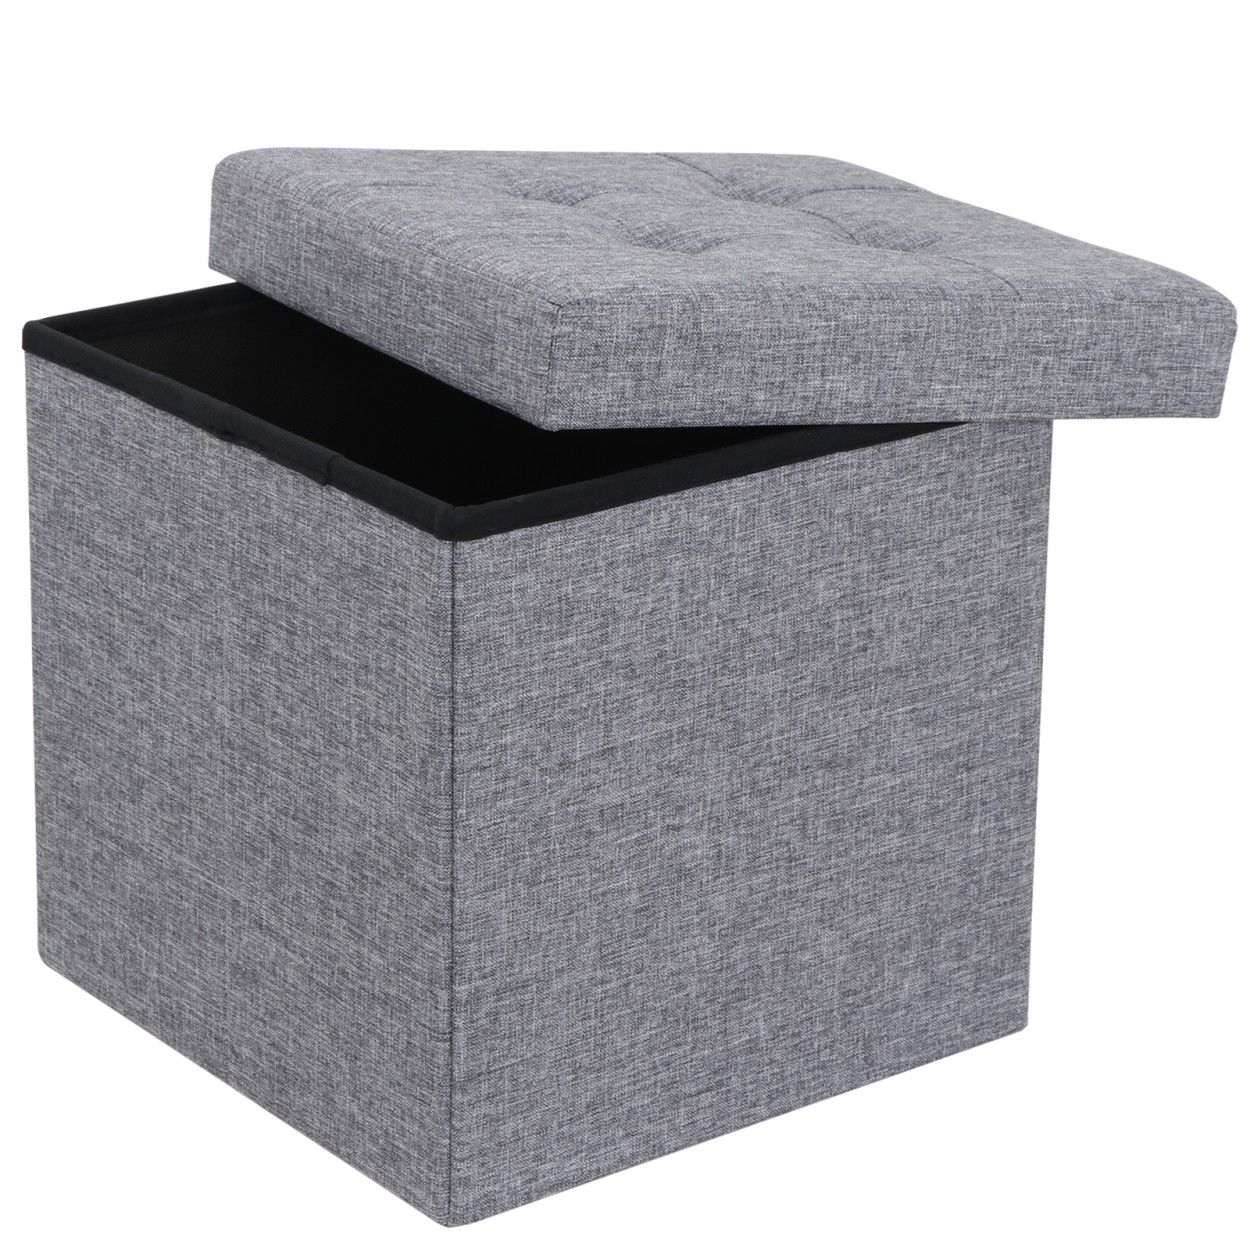 Zeny Foldable Tufted Faux Leather Storage Ottoman Seat Bench Square Cube Foot Rest Stool